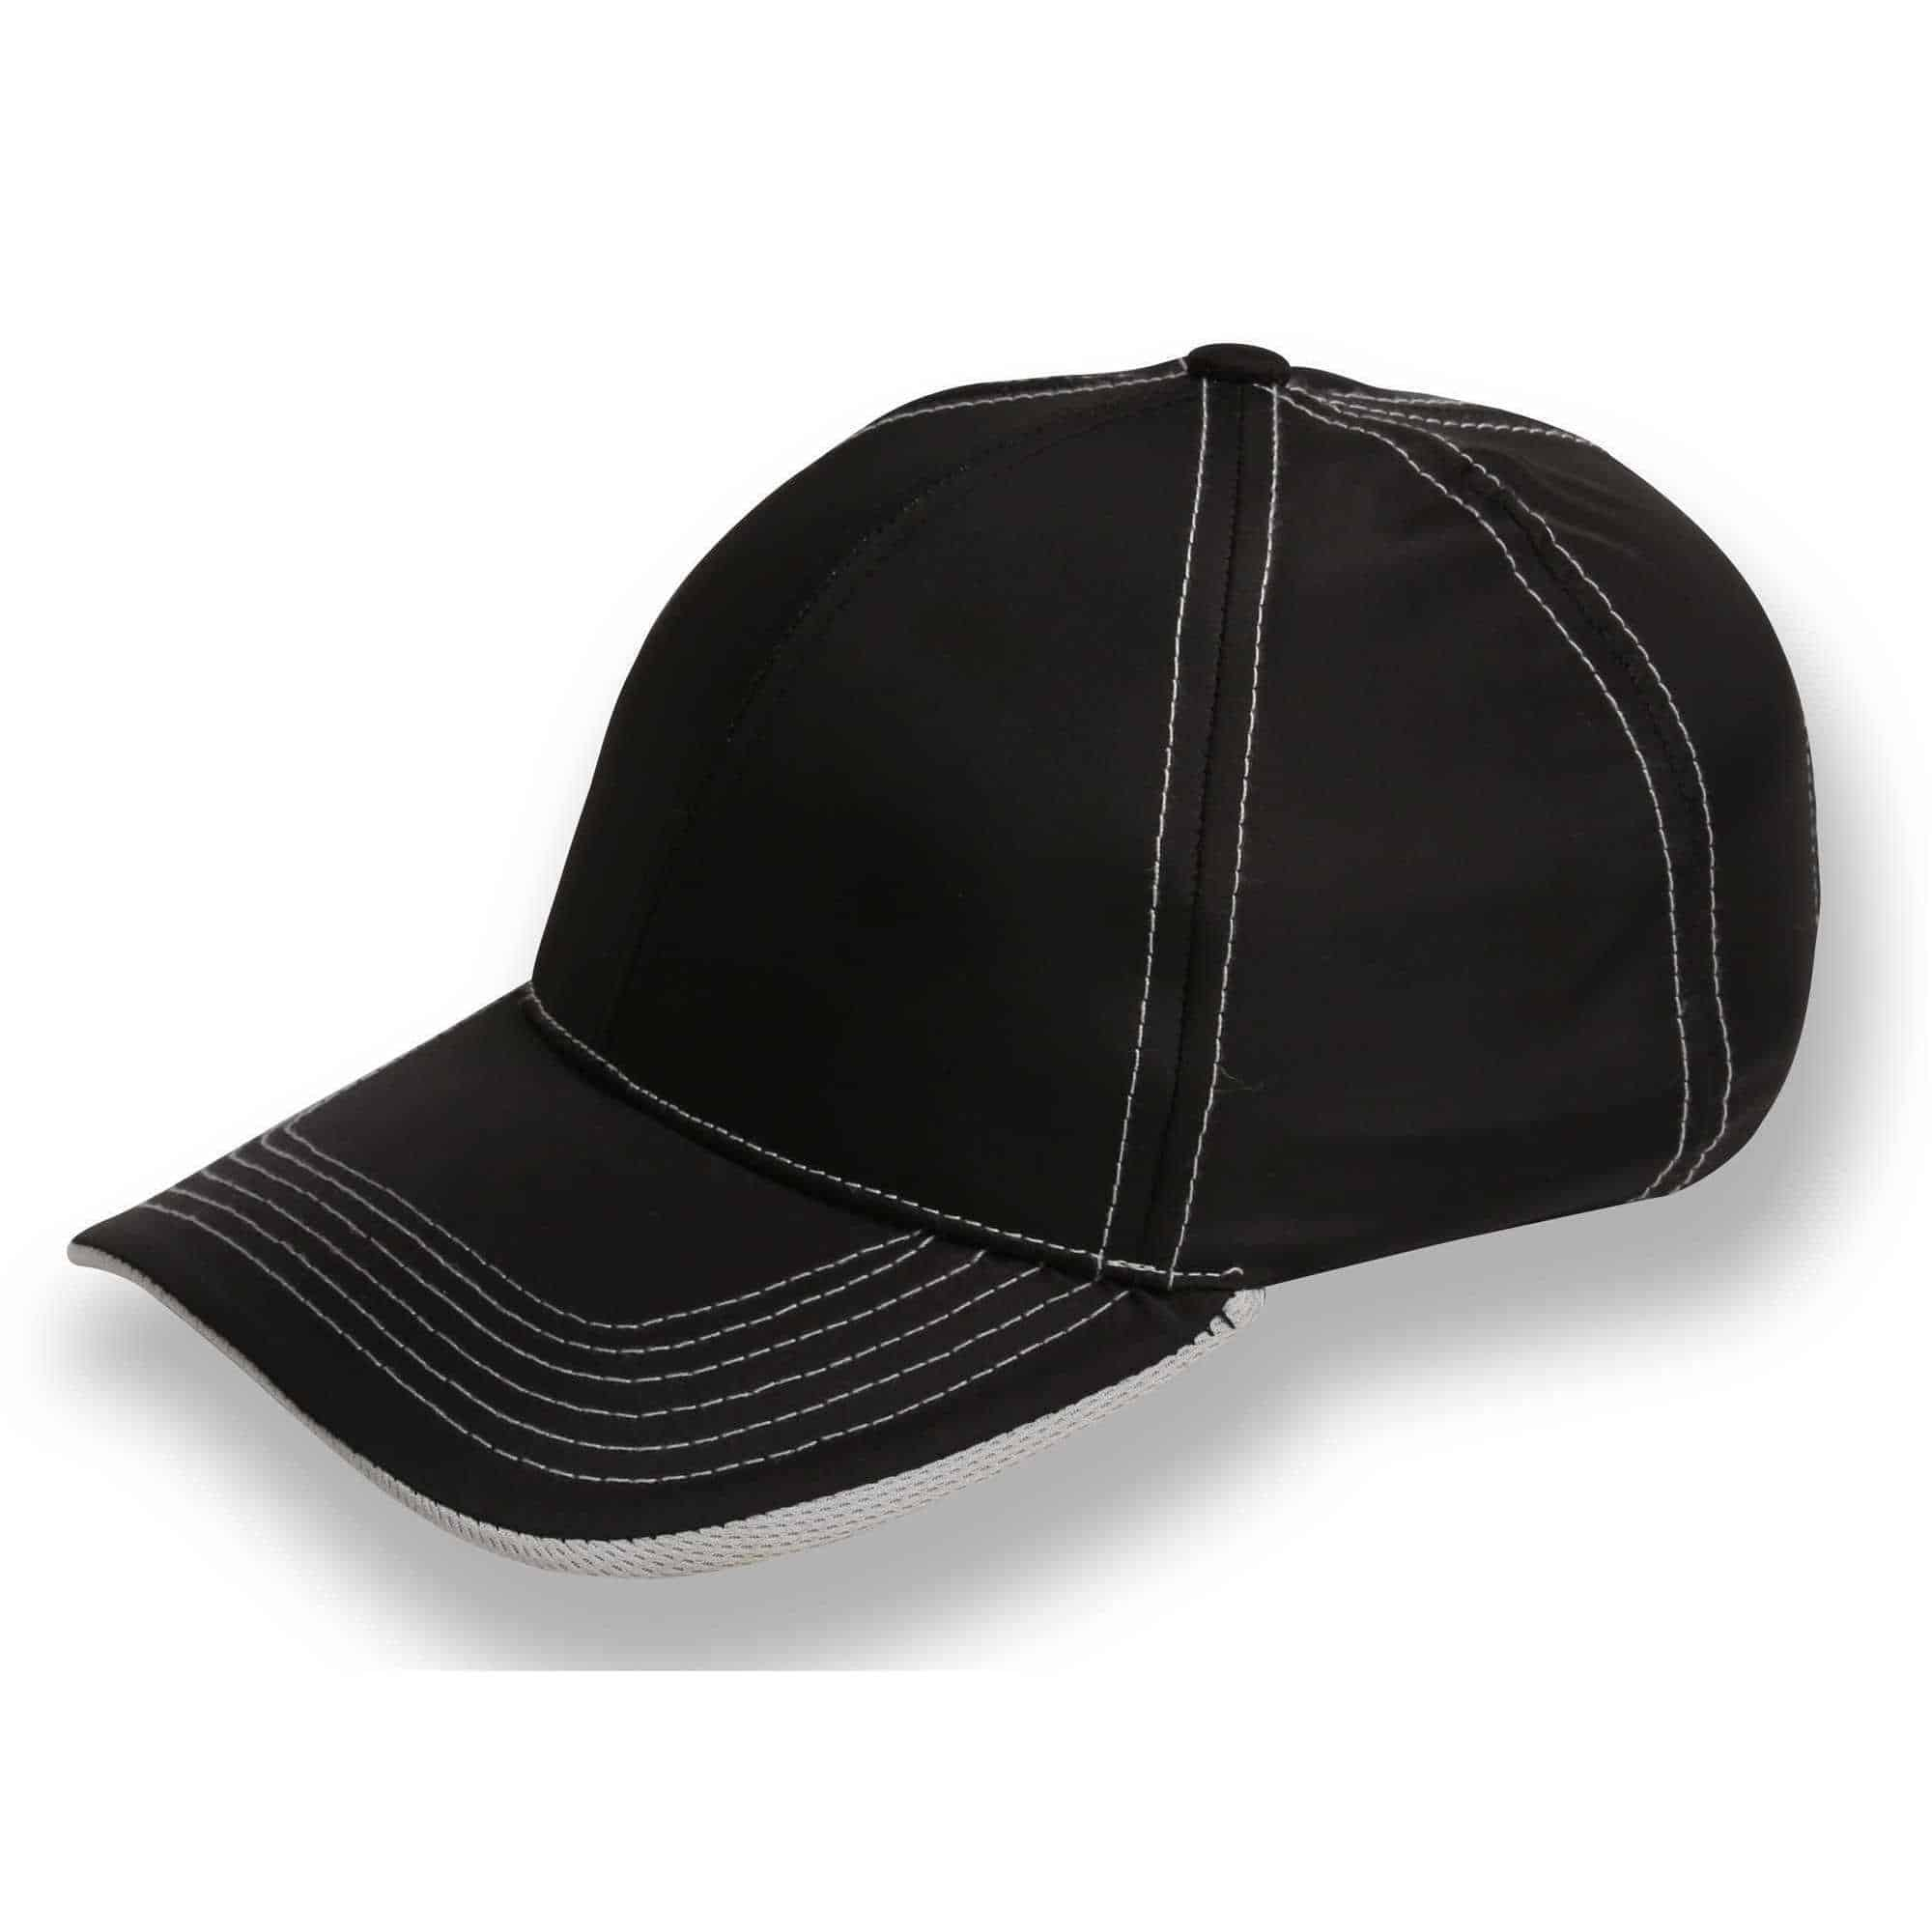 Benchmark 6 Panel Cap With Contrast Stitching Grey Underpeak Headwear and Accessories